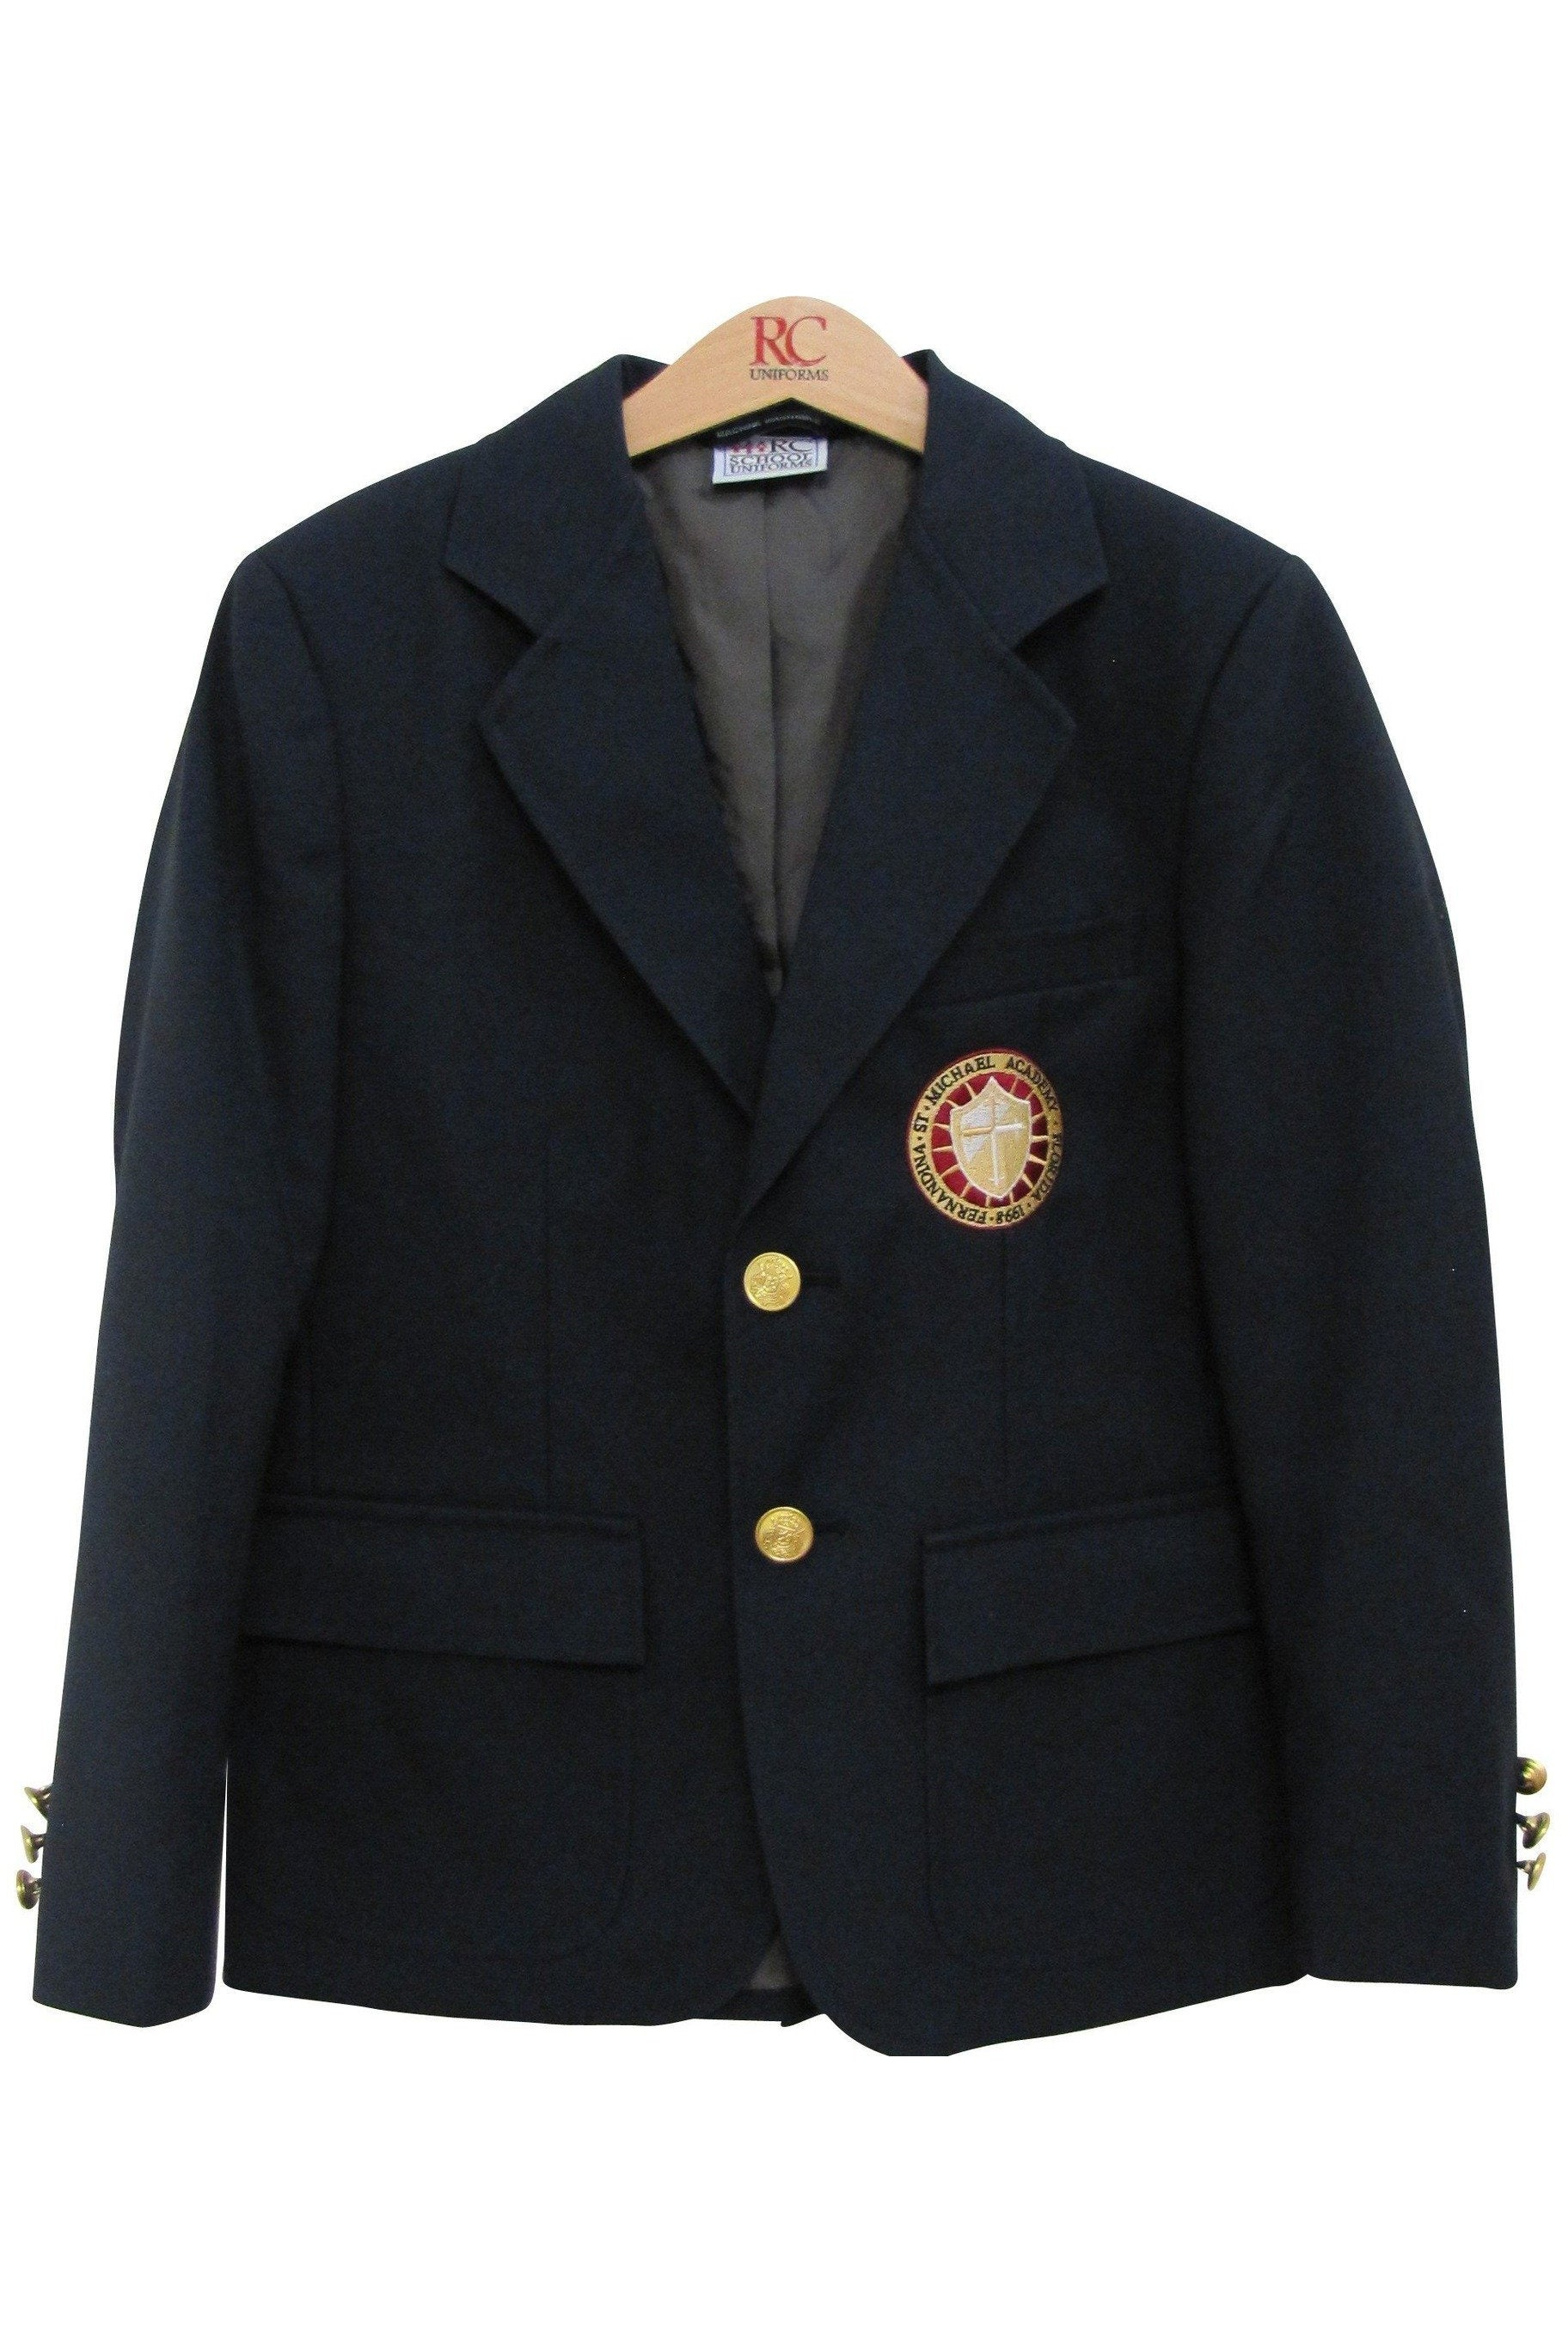 Navy Blazer - RC Uniforms